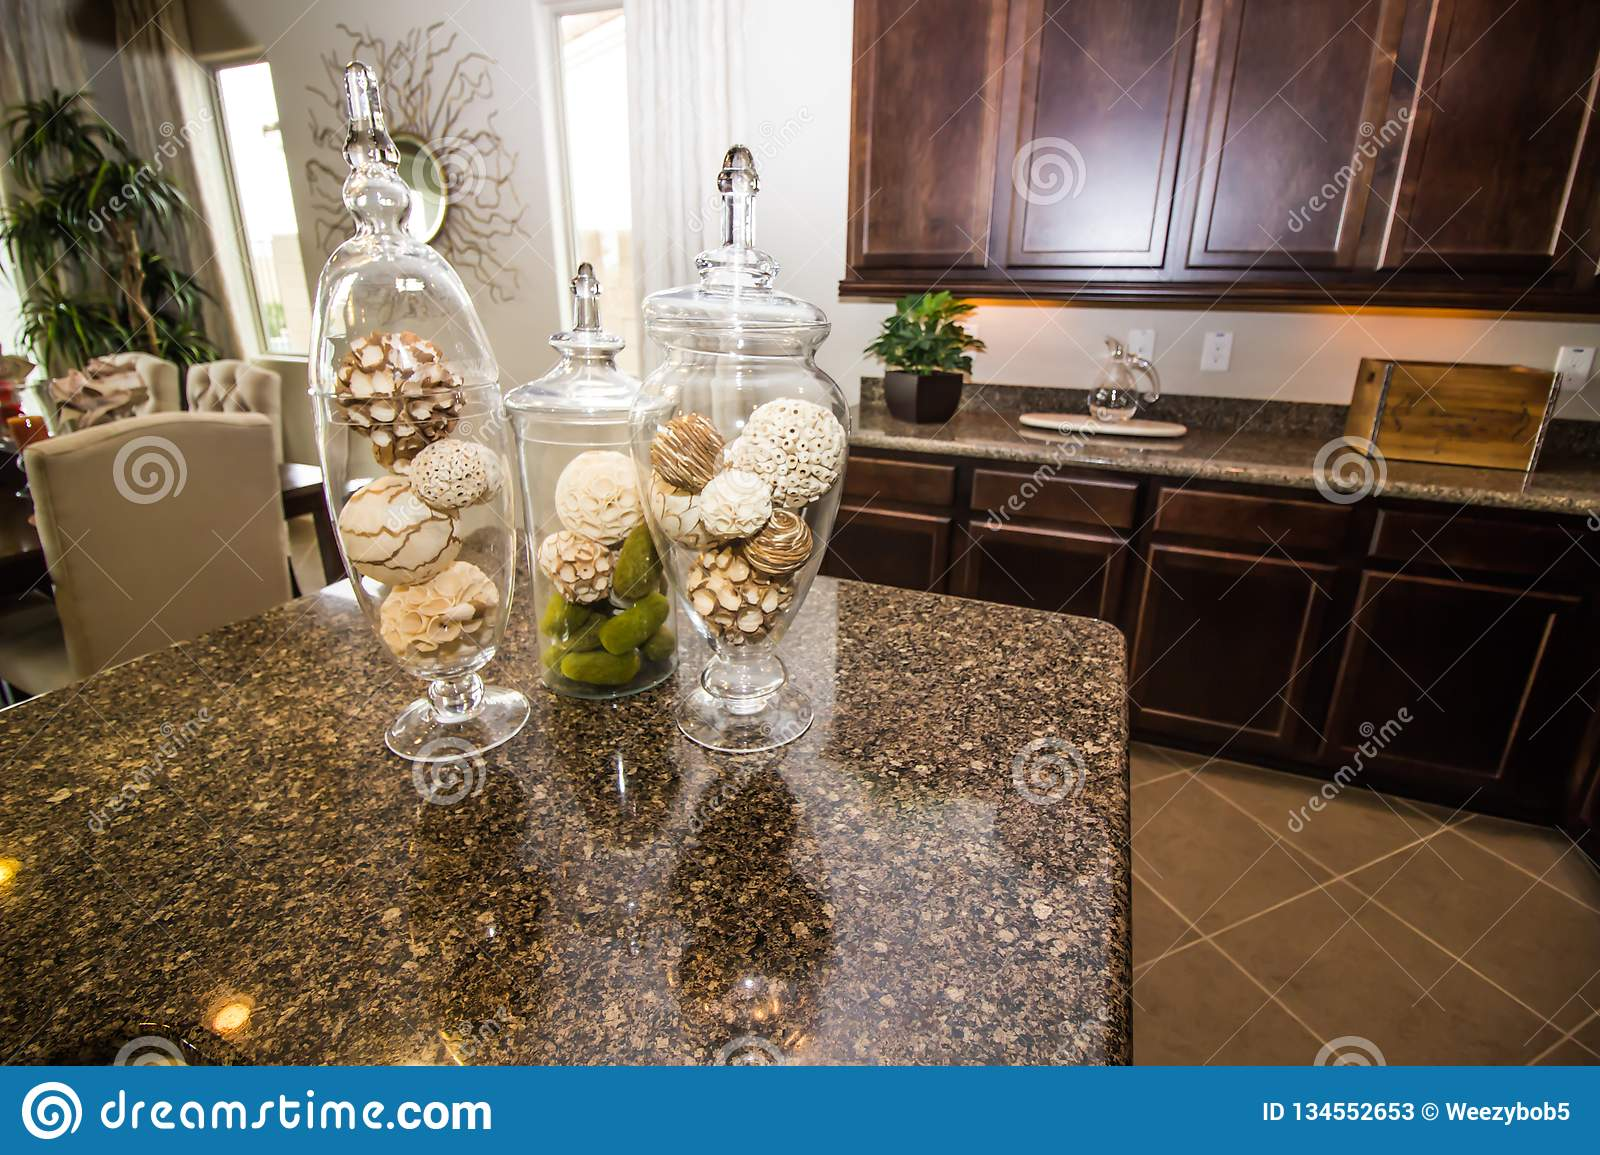 Three Glass Vases On Modern Kitchen Counter Stock Image - Image of